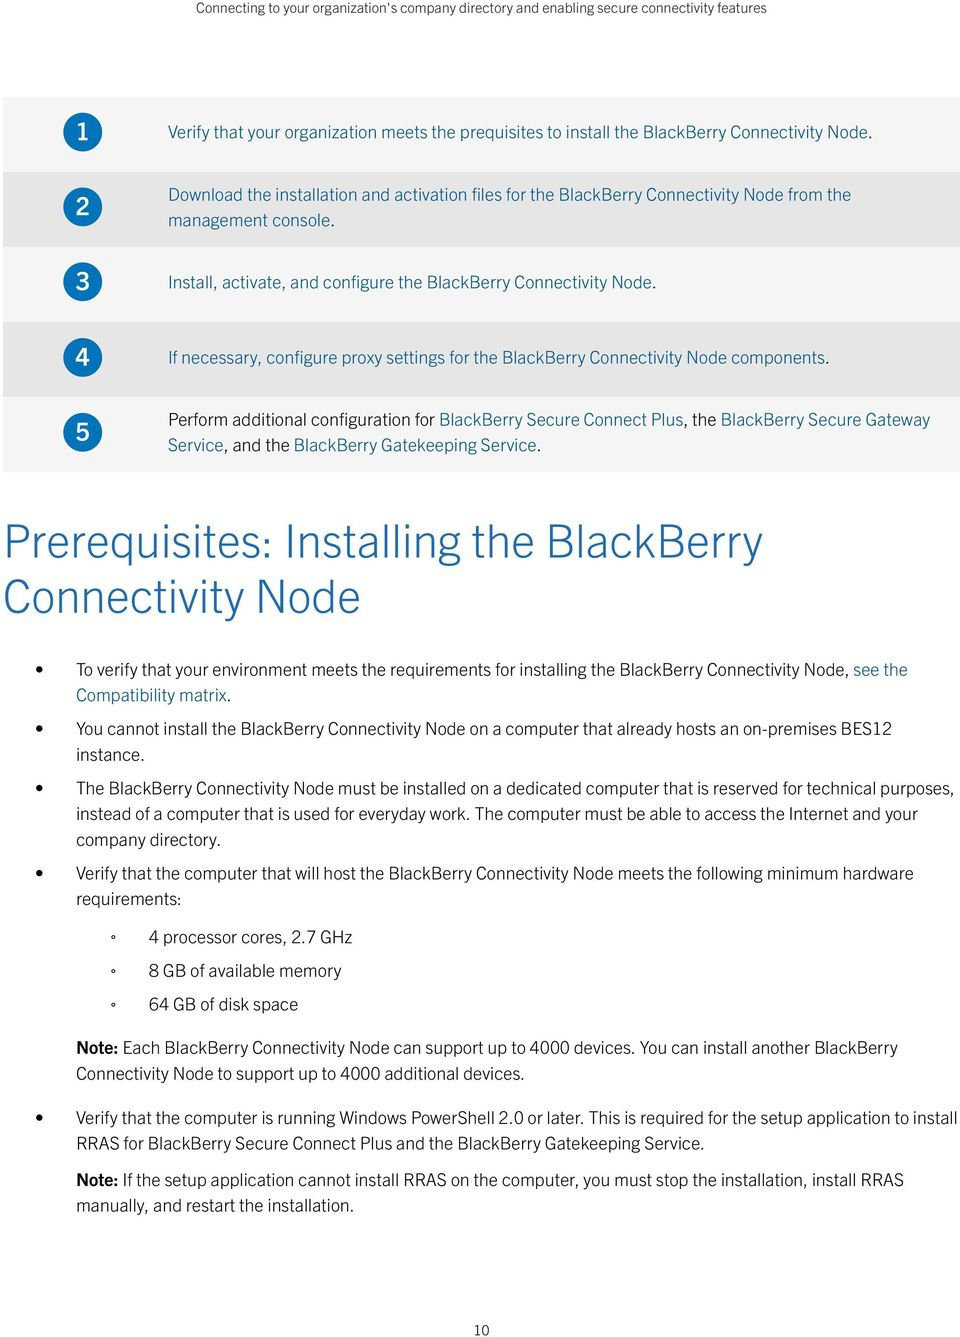 If necessary, configure proxy settings for the BlackBerry Connectivity Node components.